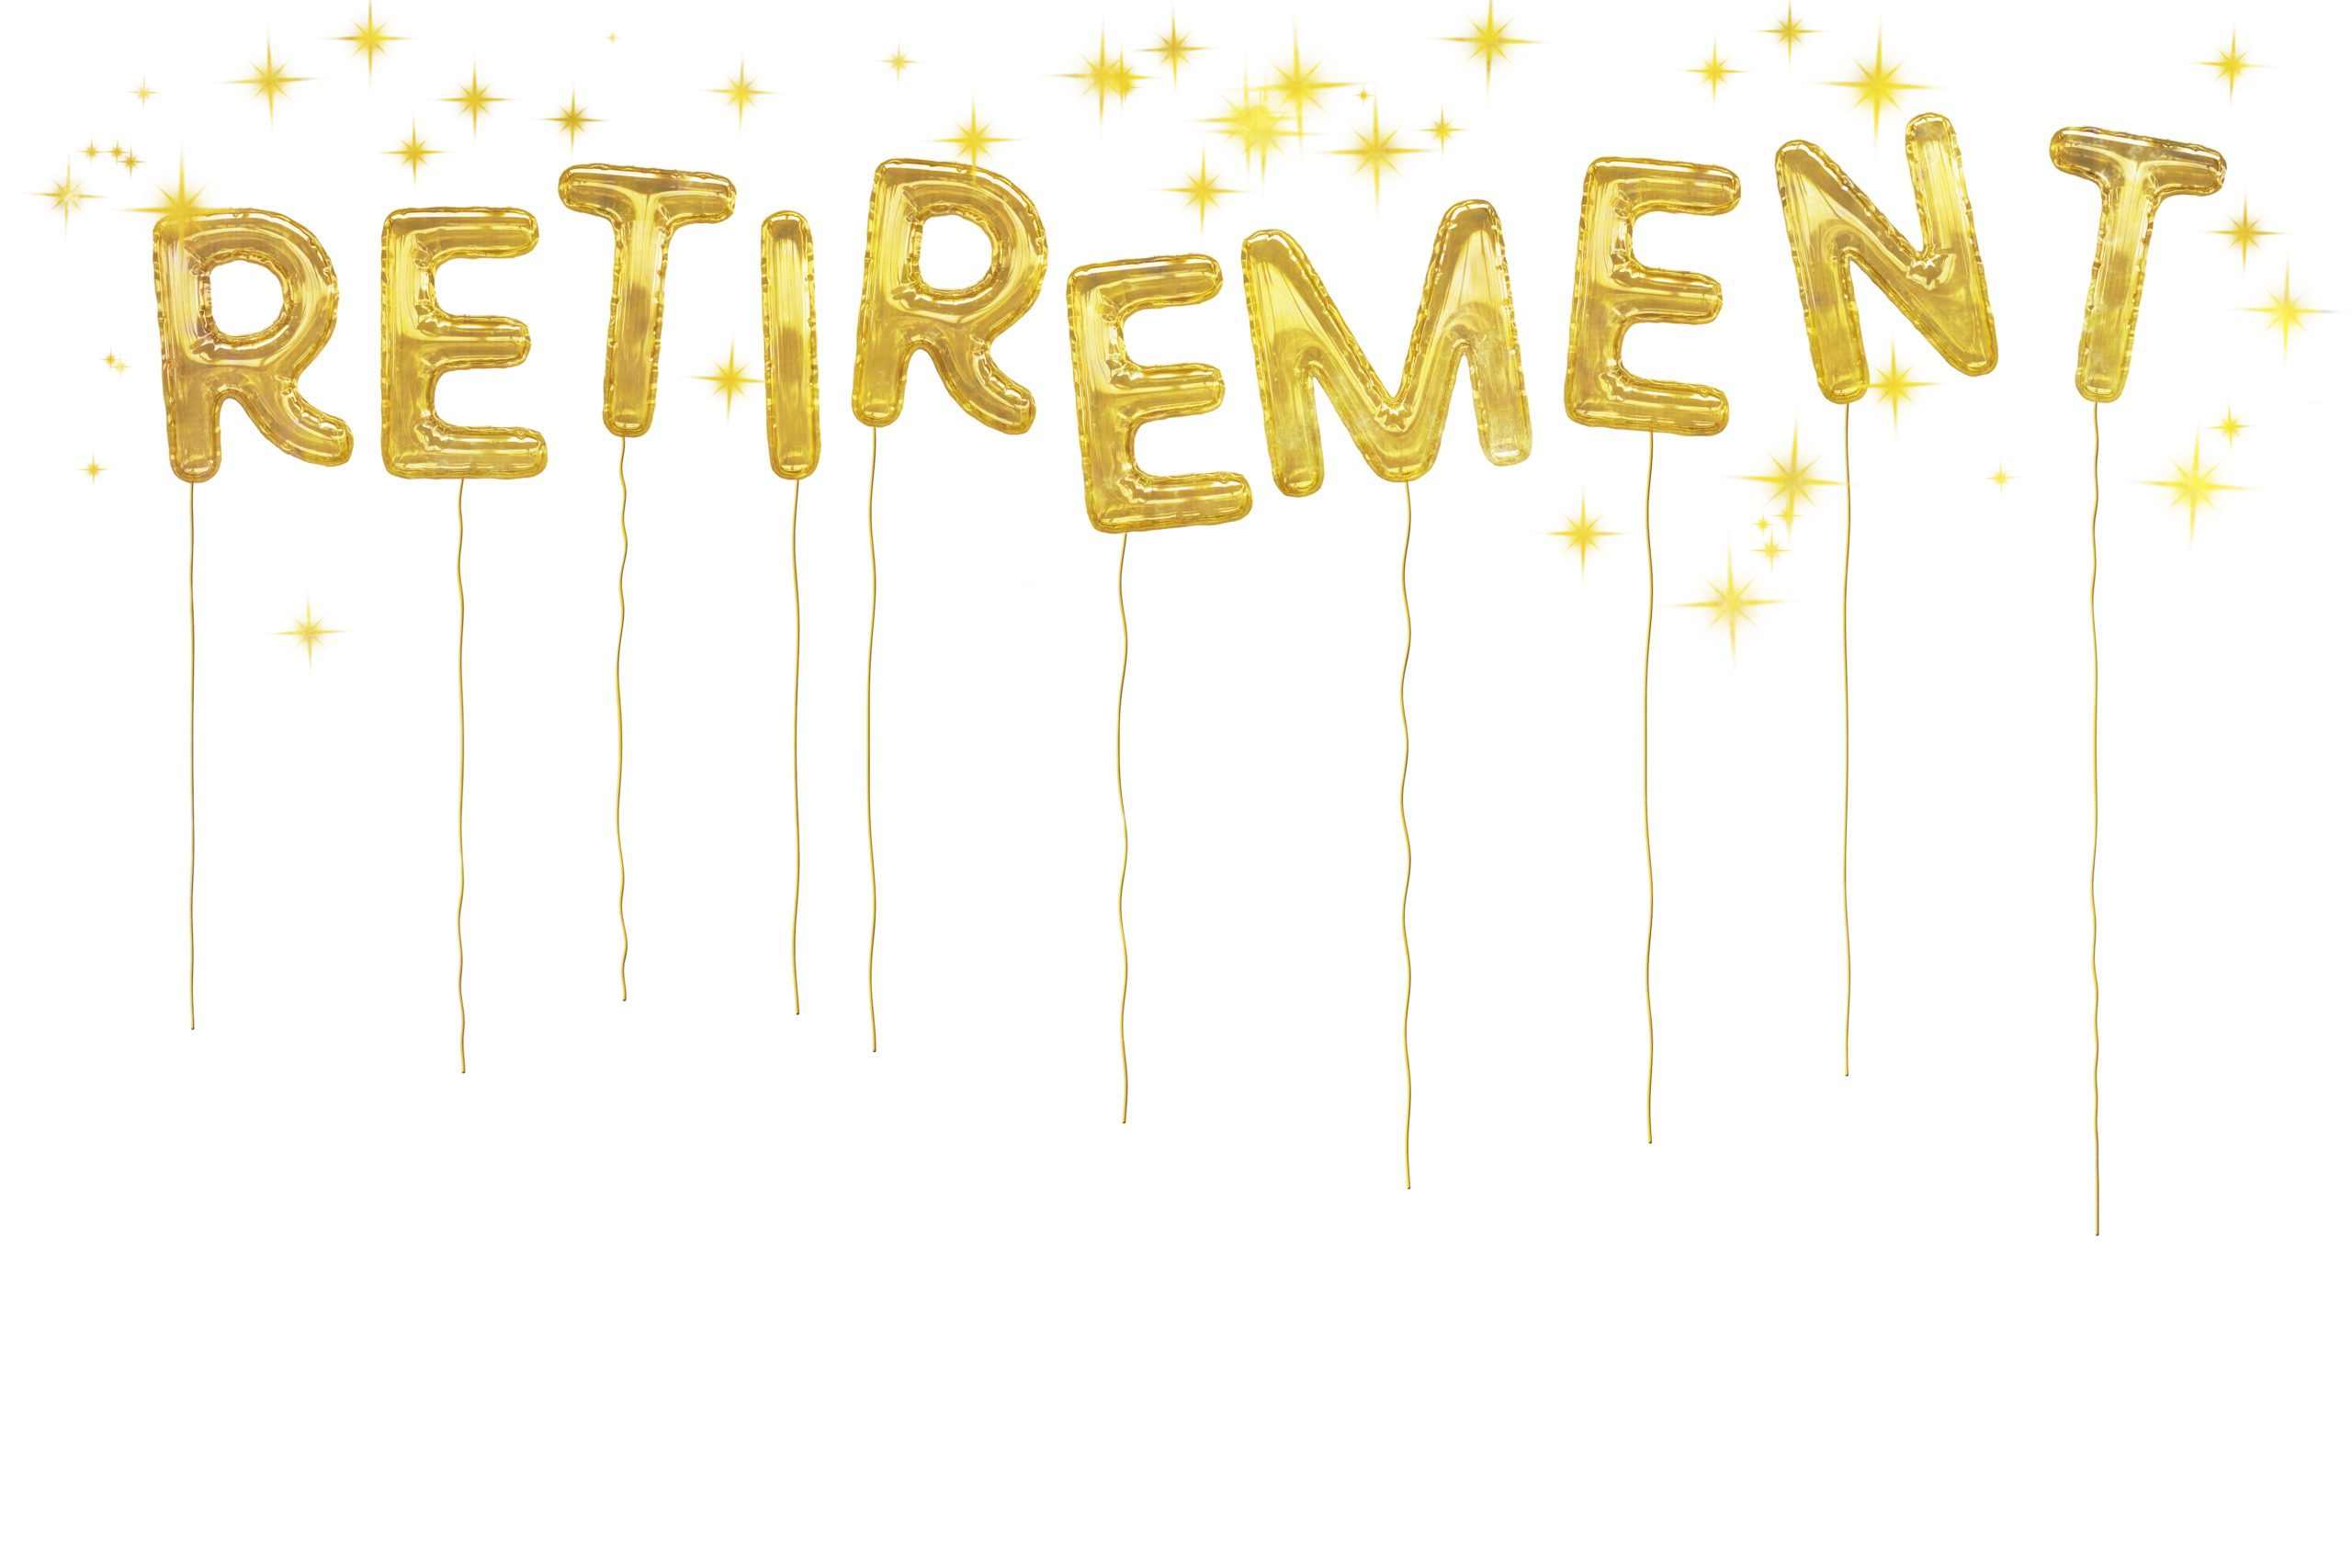 gold retirement foil balloons on a white background